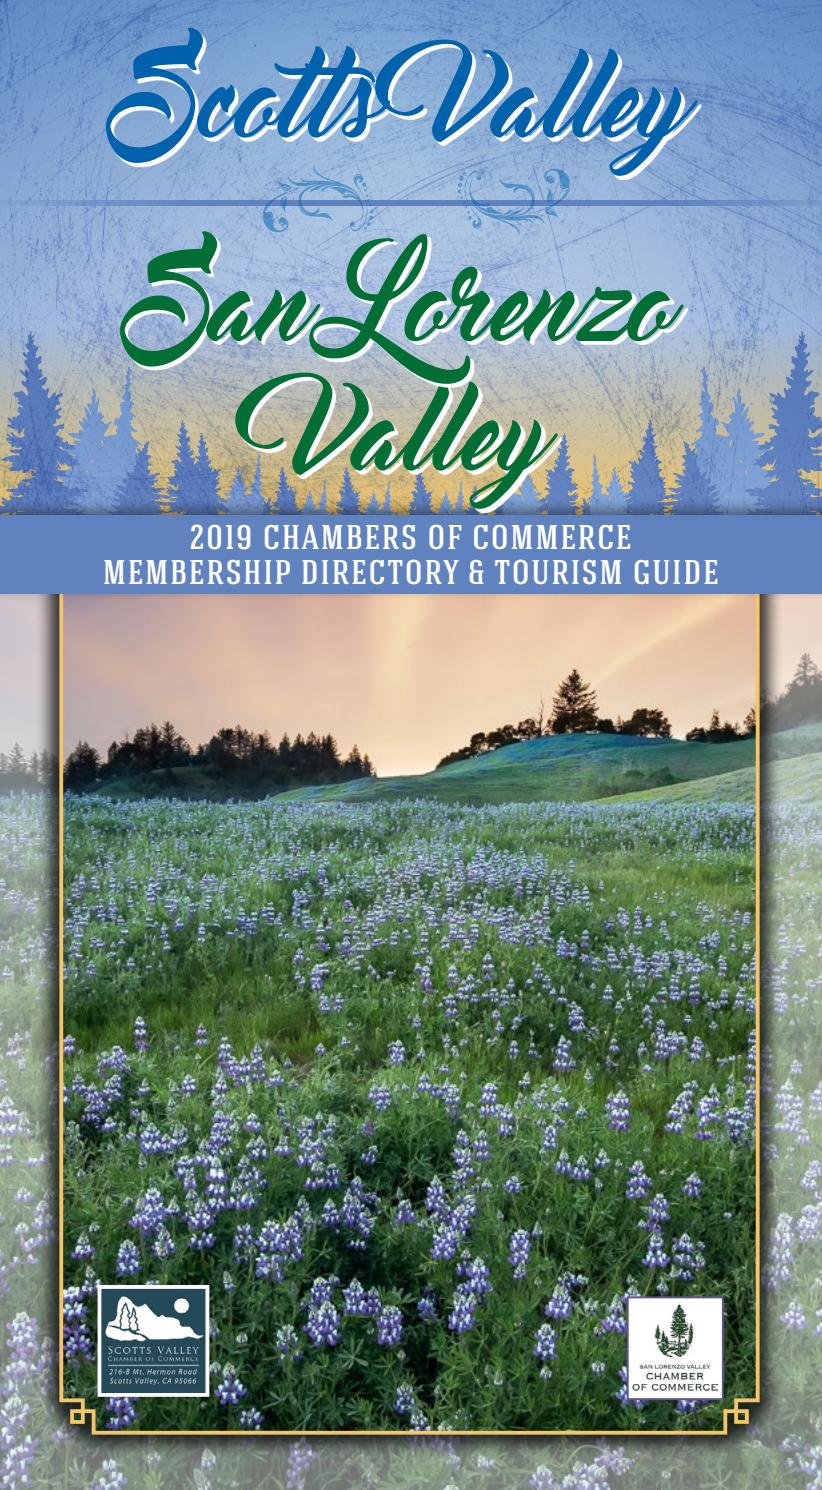 Scotts Valley San Lorenzo Valley 2019 Chamber Of Commerce Membership Directory Tourism Guide By Times Publishing Group Inc Issuu